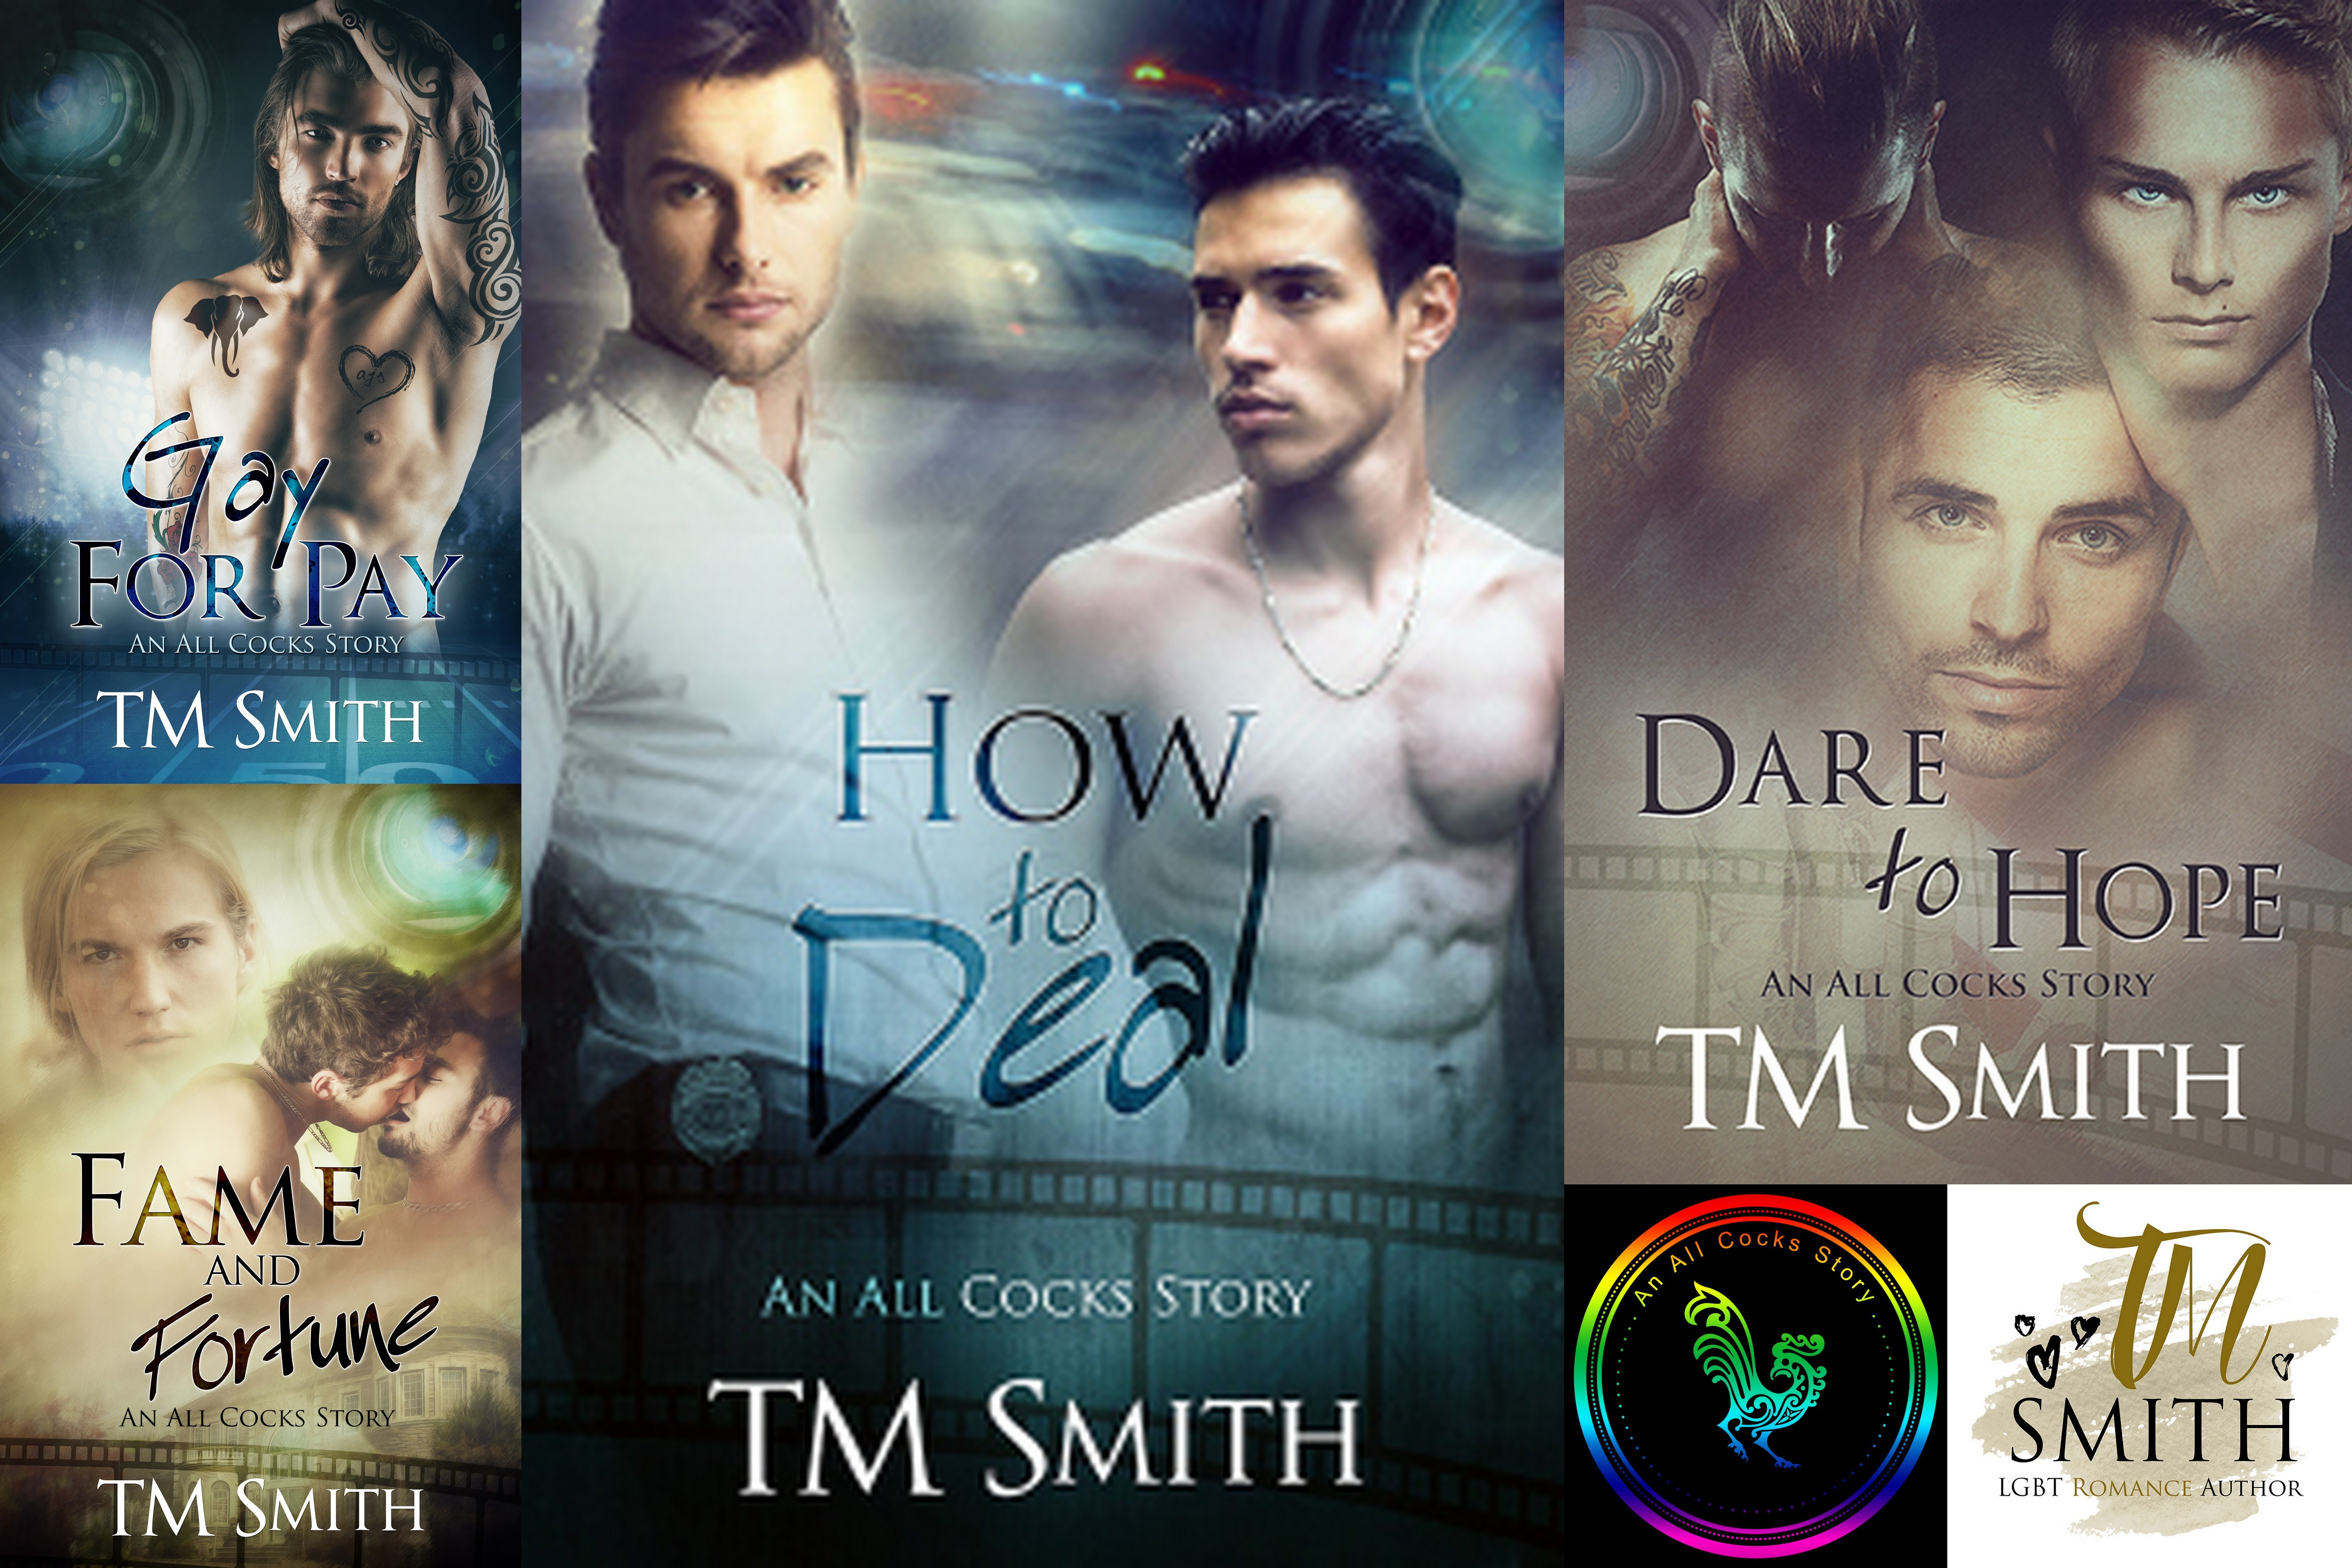 BLOG TOUR: Dare to Hope by TM Smith